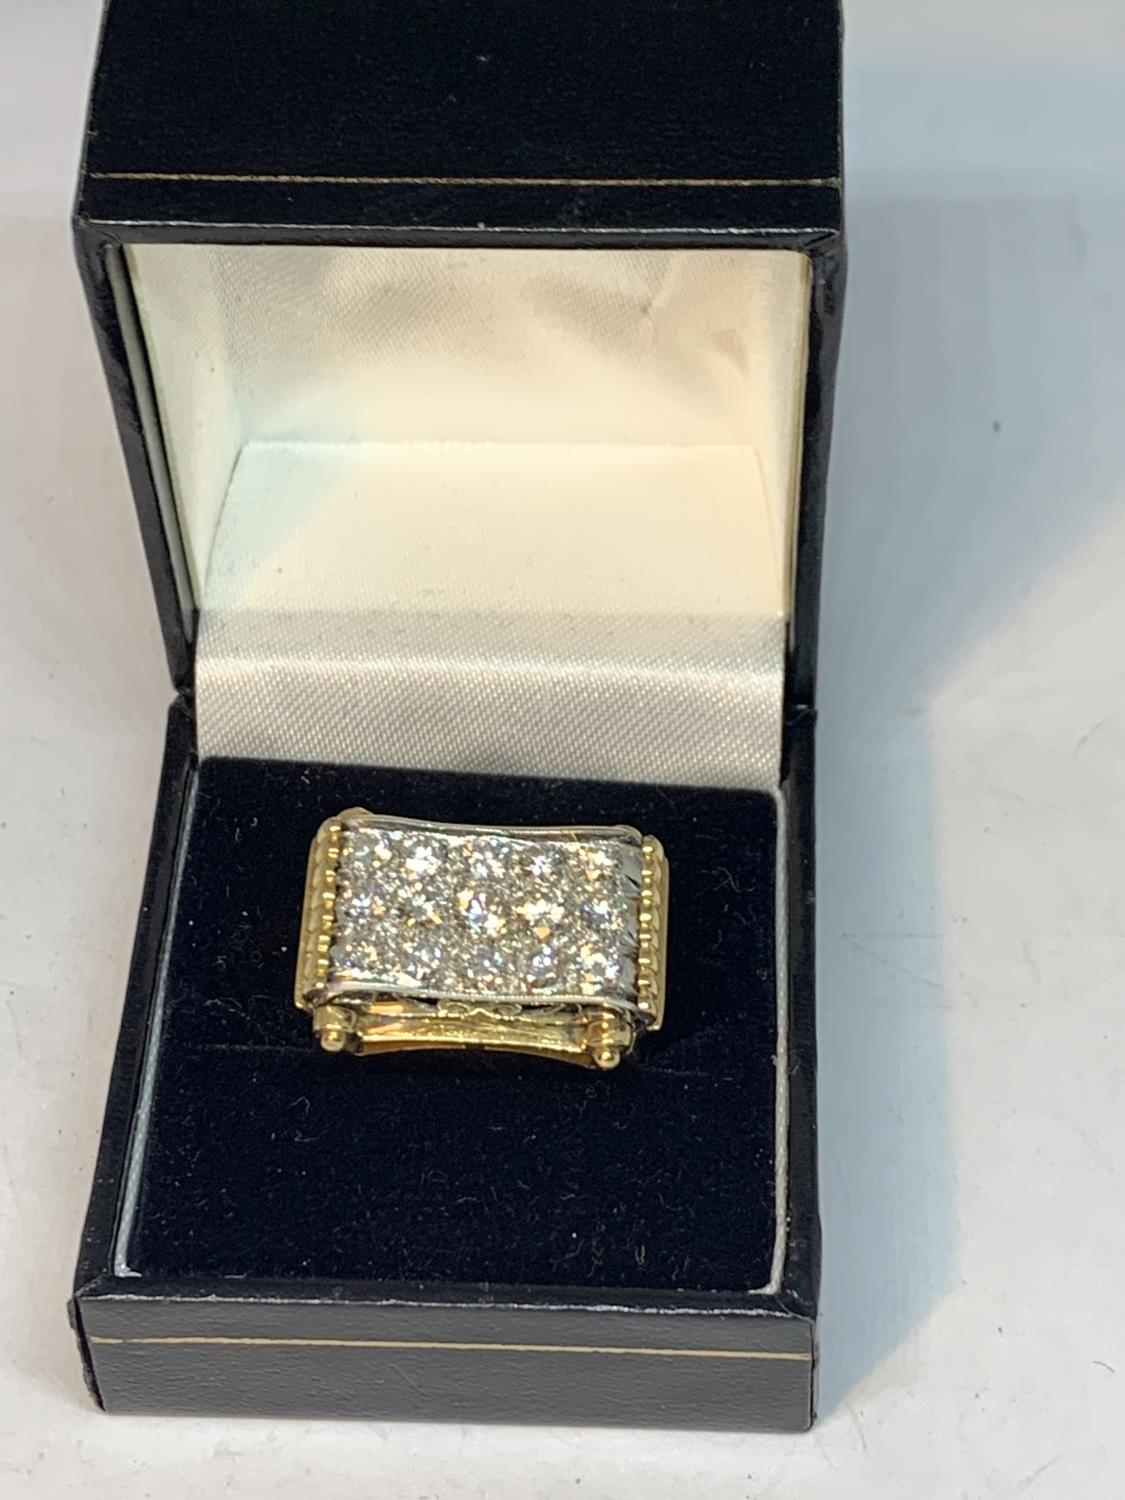 A HEAVY 18 CARAT GOLD RING WITH FIFTEEN DIAMONDS SET IN A RECTANGLE OF DIAMOND CHIPS GROSS WEIGHT 13